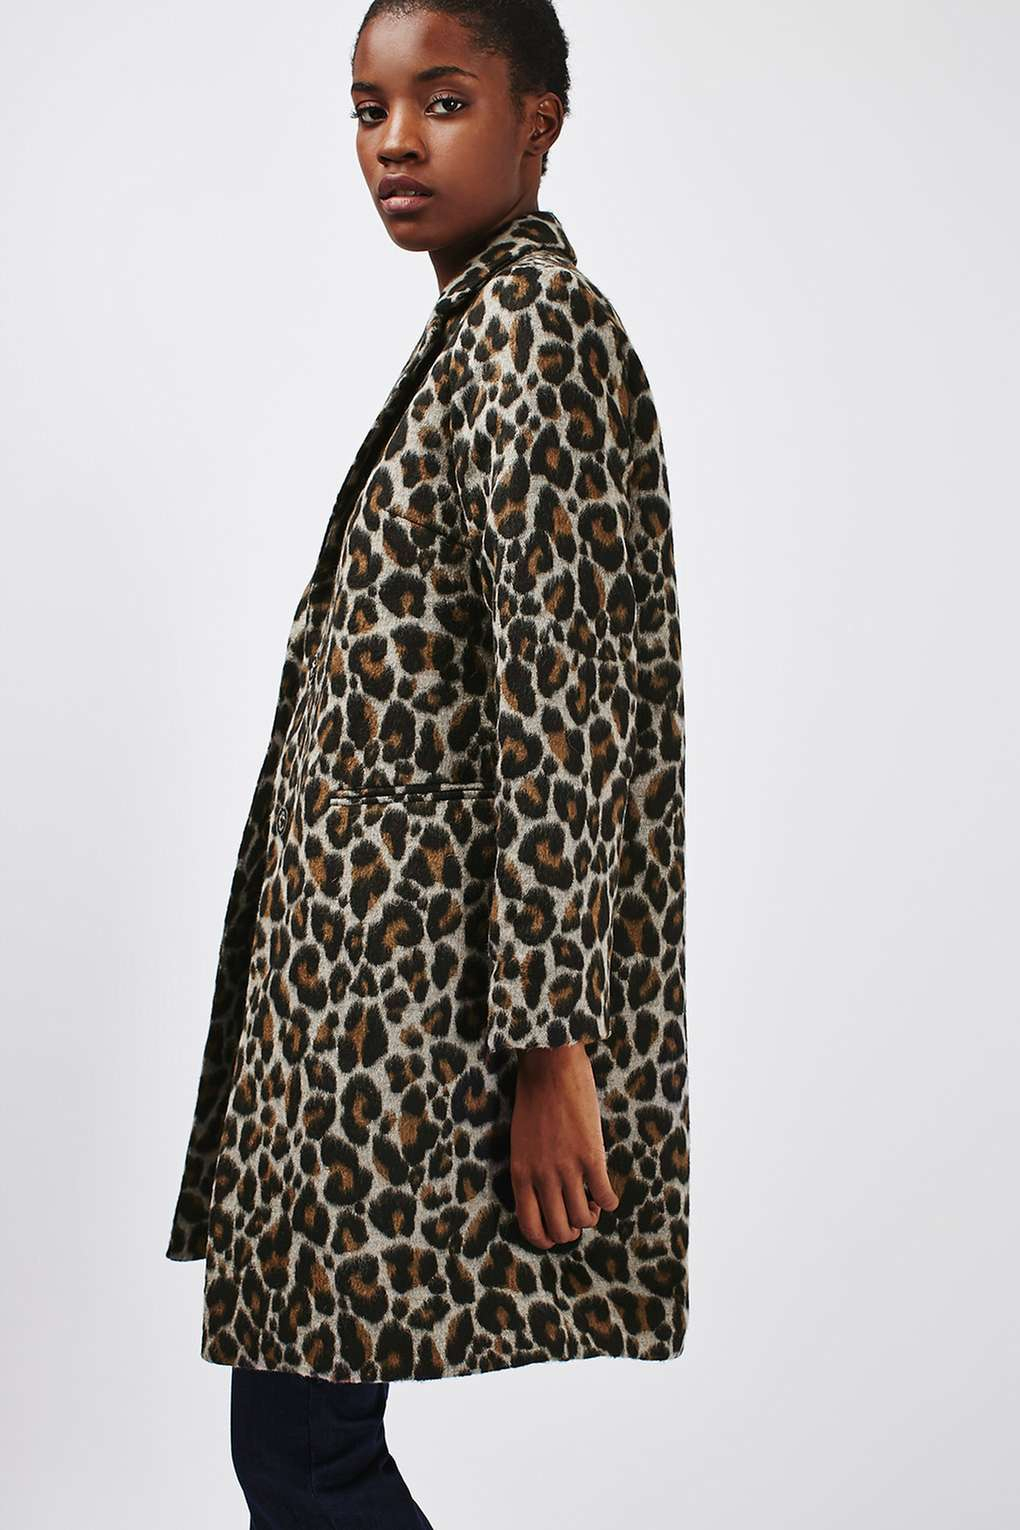 The Leopard Print Coat